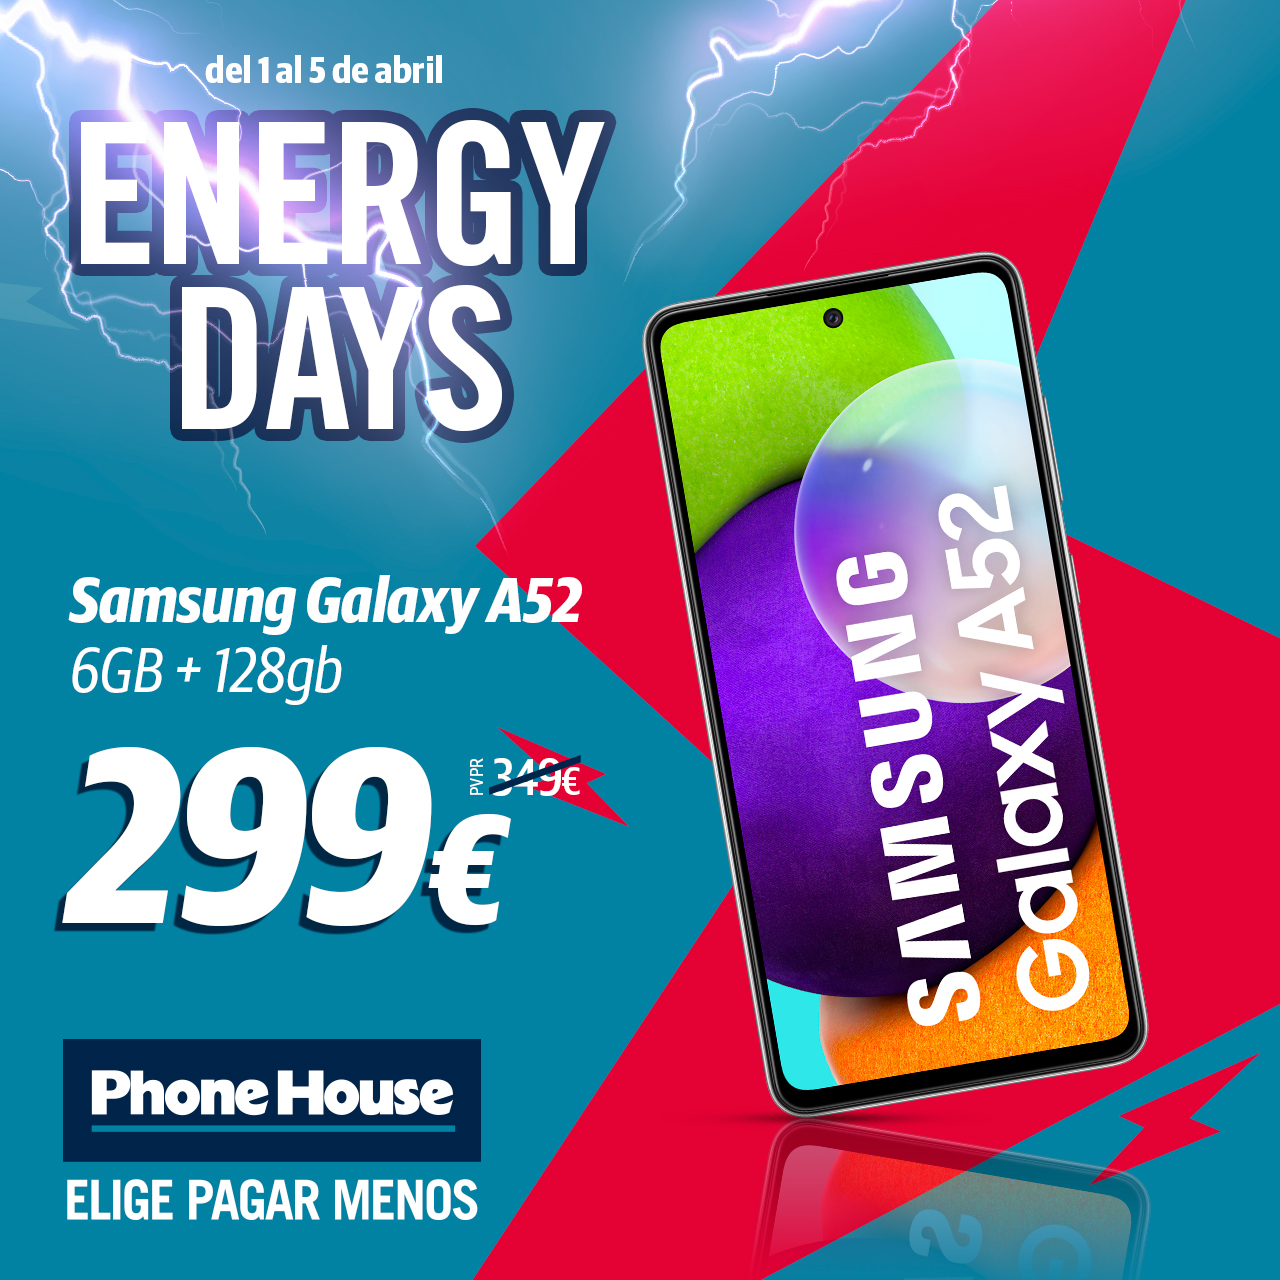 1000x1000 Rrss Energy Days 01a05 04 Prioridad4